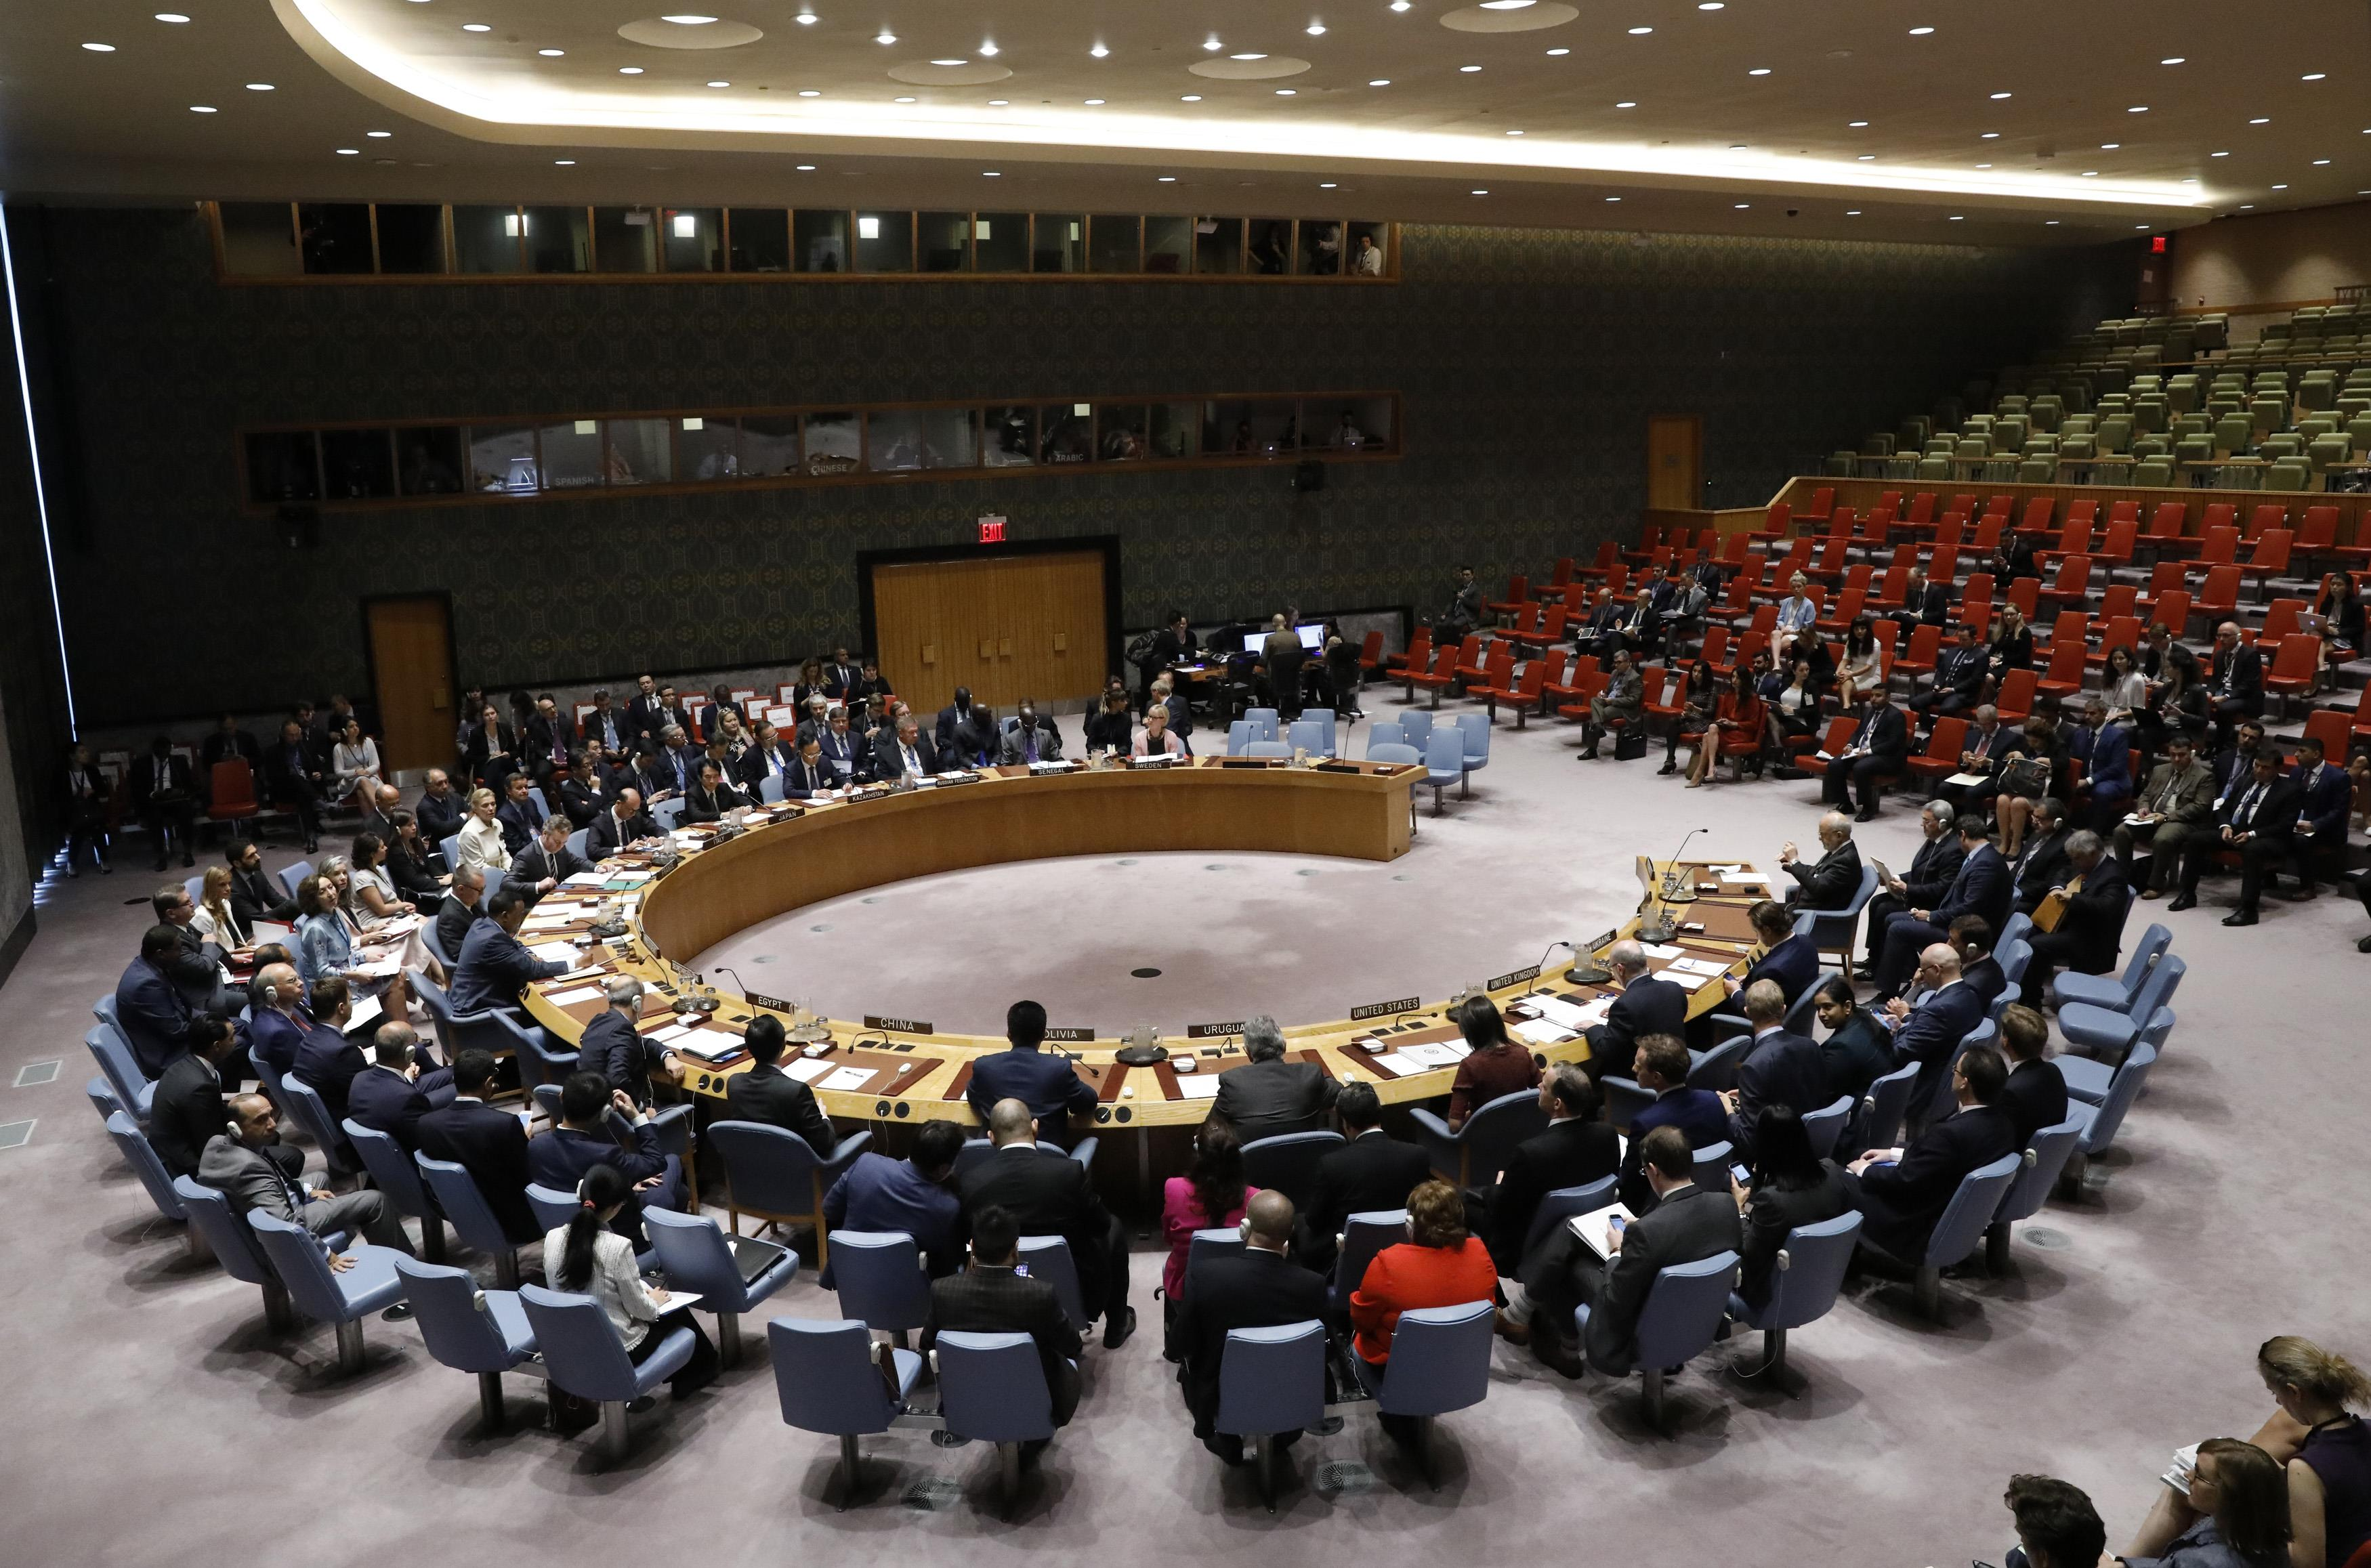 The United Nations Security Council meets to discuss adopting a resolution to help preserve evidence of Islamic State crimes in Iraq, during the 72nd United Nations General Assembly at U.N. Headquarters in New York, U.S., September 21, 2017.